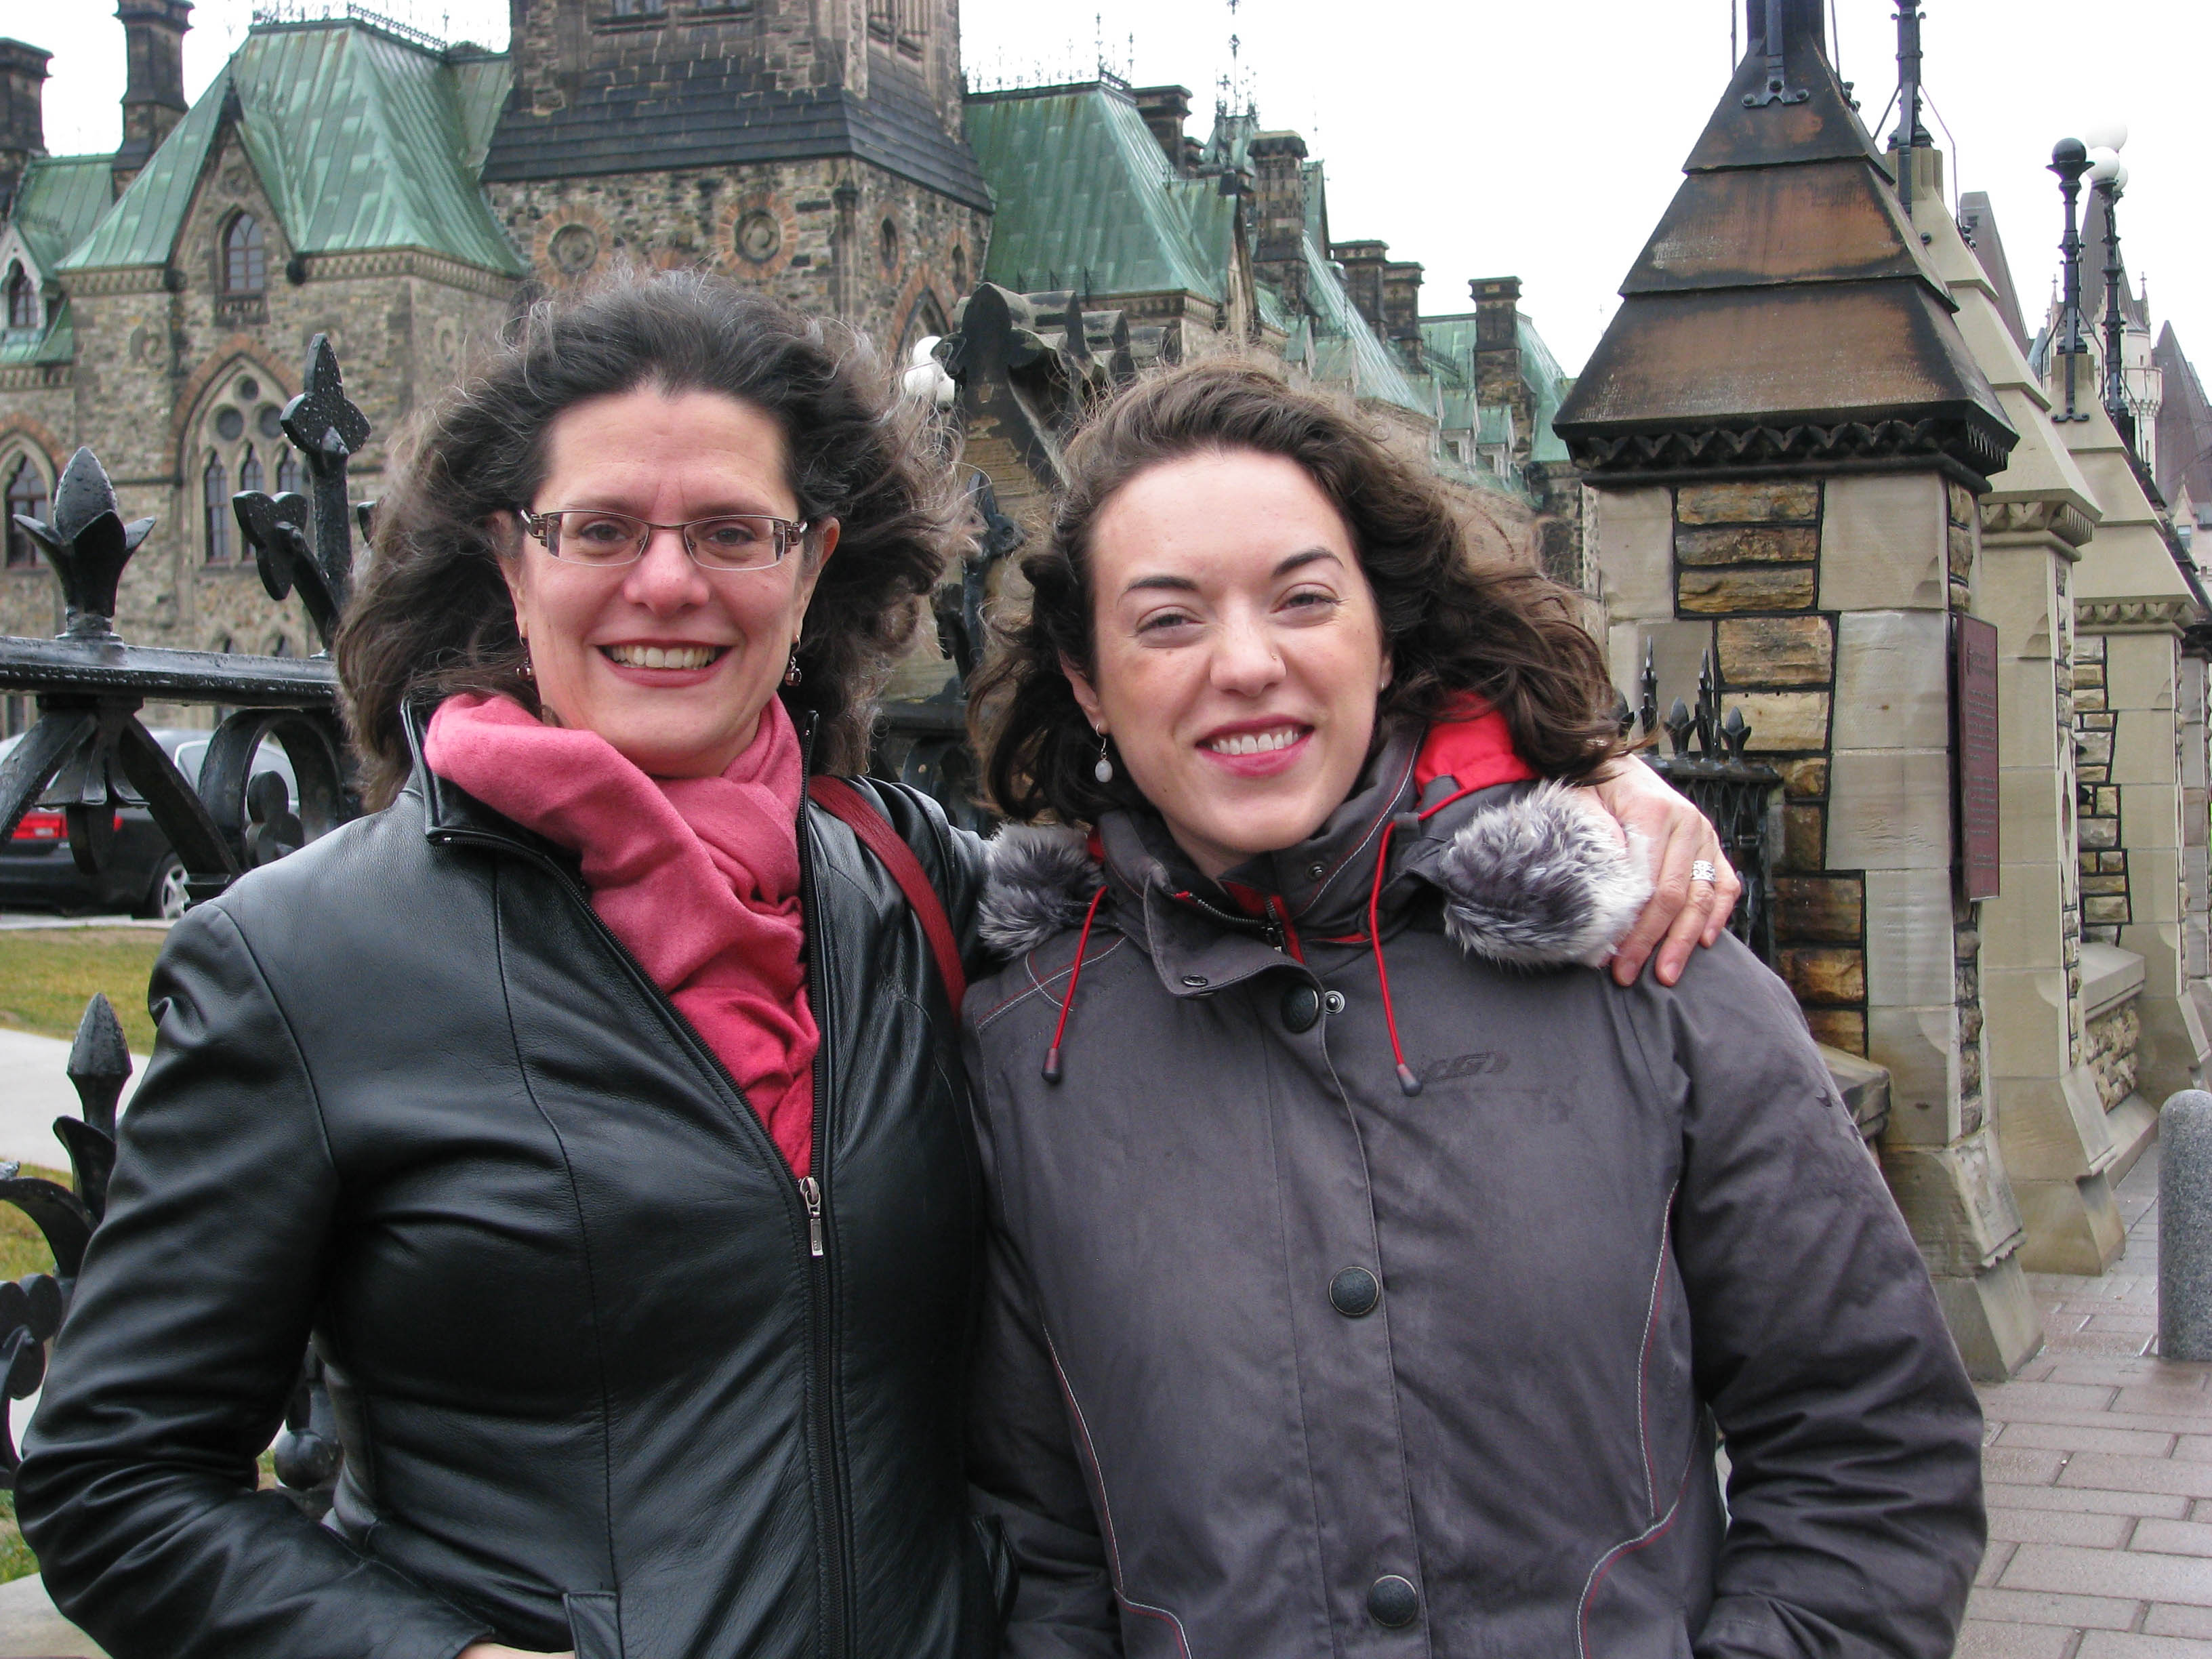 Jacqueline Couture (left) and Deidre Kelly are part of group of individuals that are sponsoring a Syrian family to resettle in Ottawa, Cananda